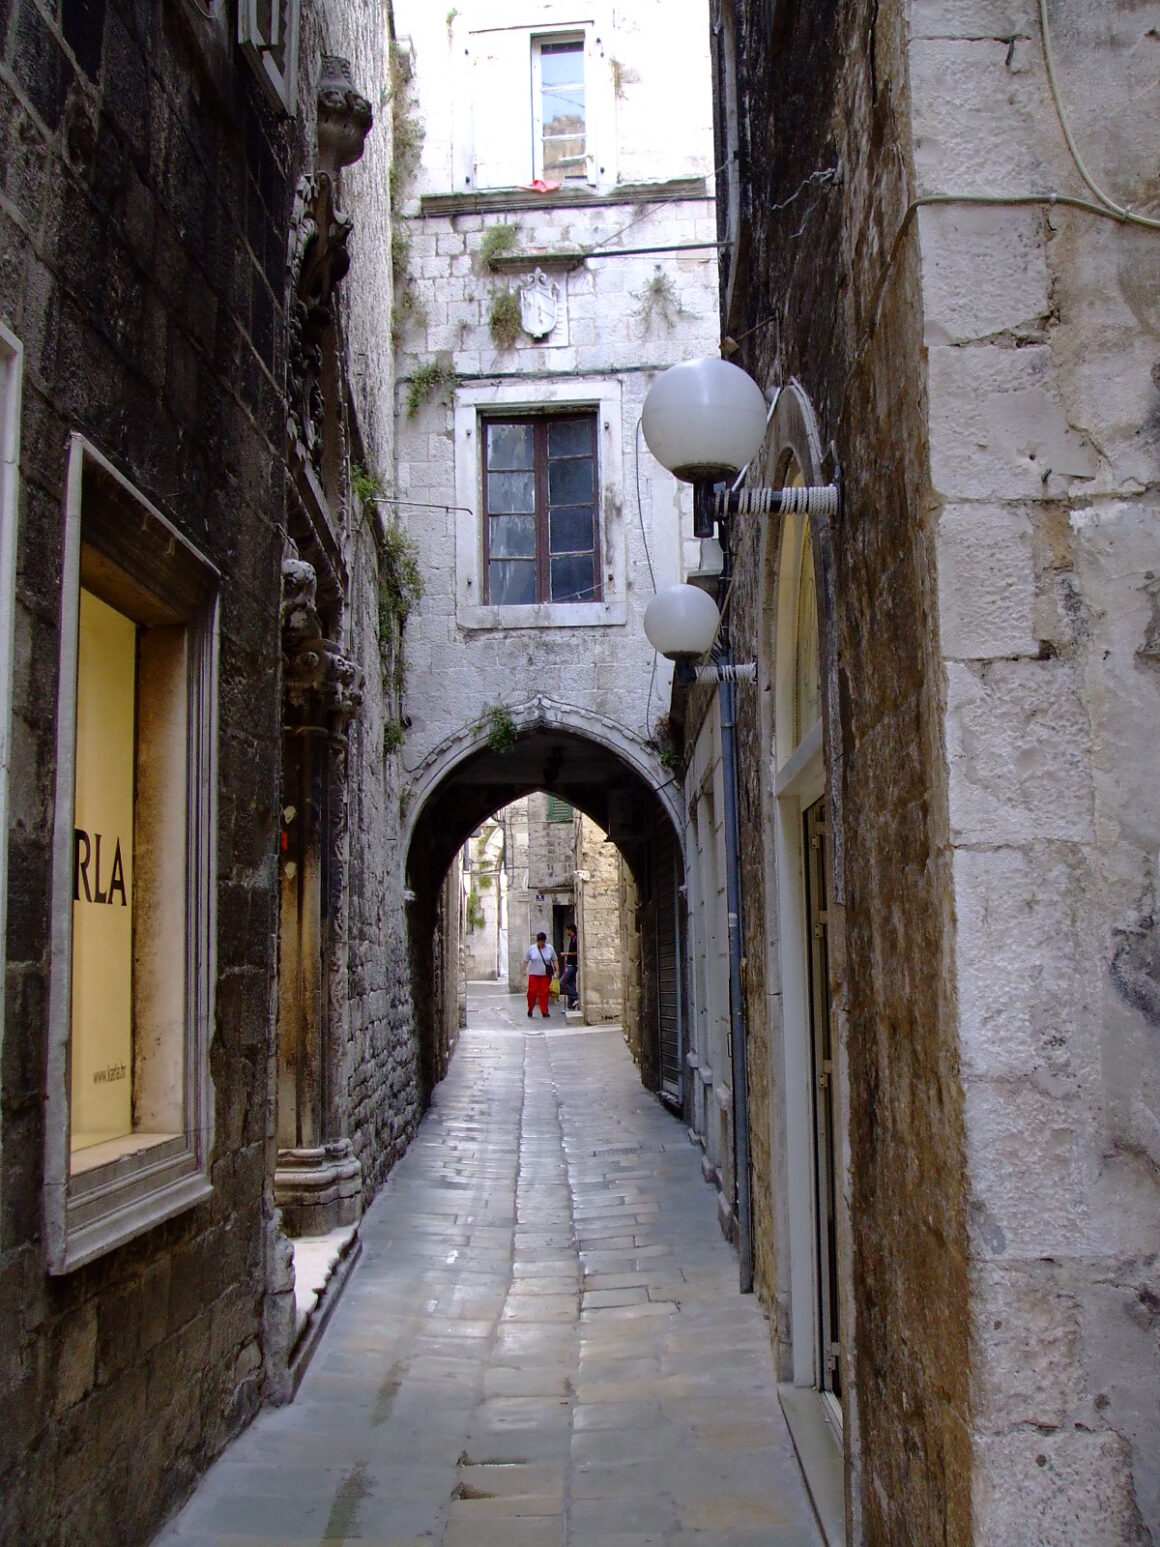 One of the Many Narrow Streets in Split